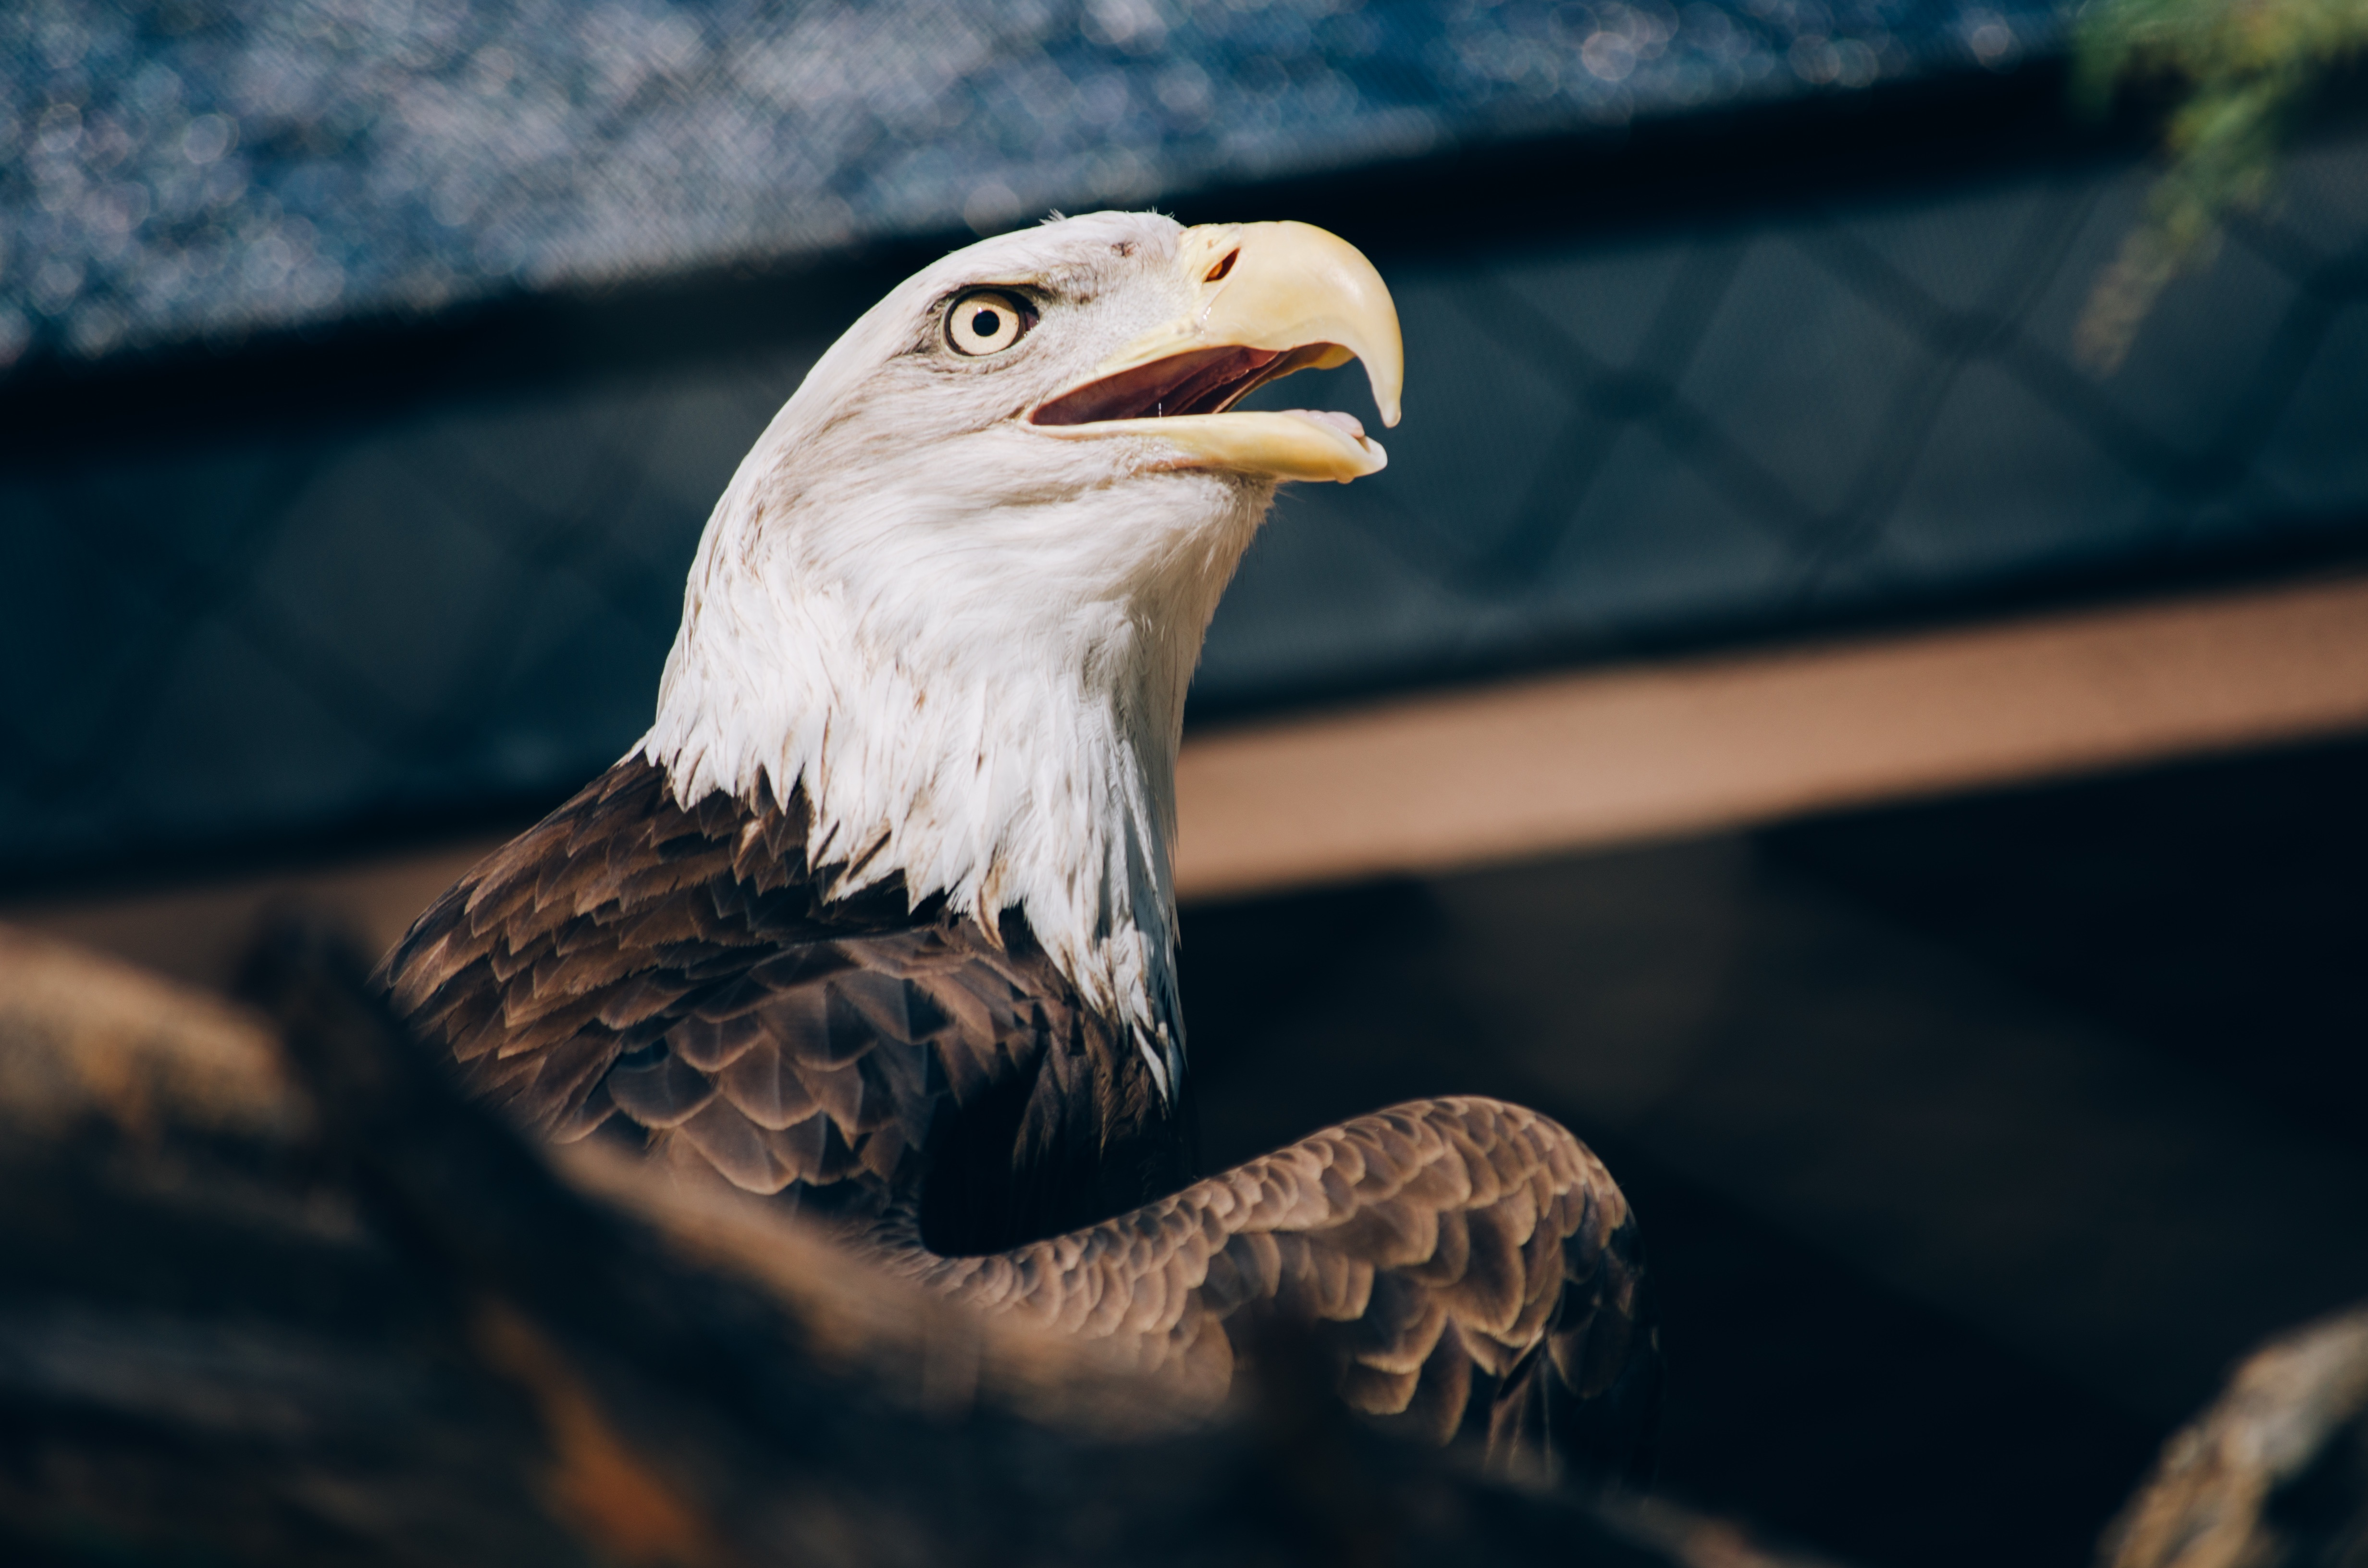 96410 download wallpaper Animals, Bald Eagle, White-Headed Eagle, Eagle, Bird, Beak, Predator screensavers and pictures for free